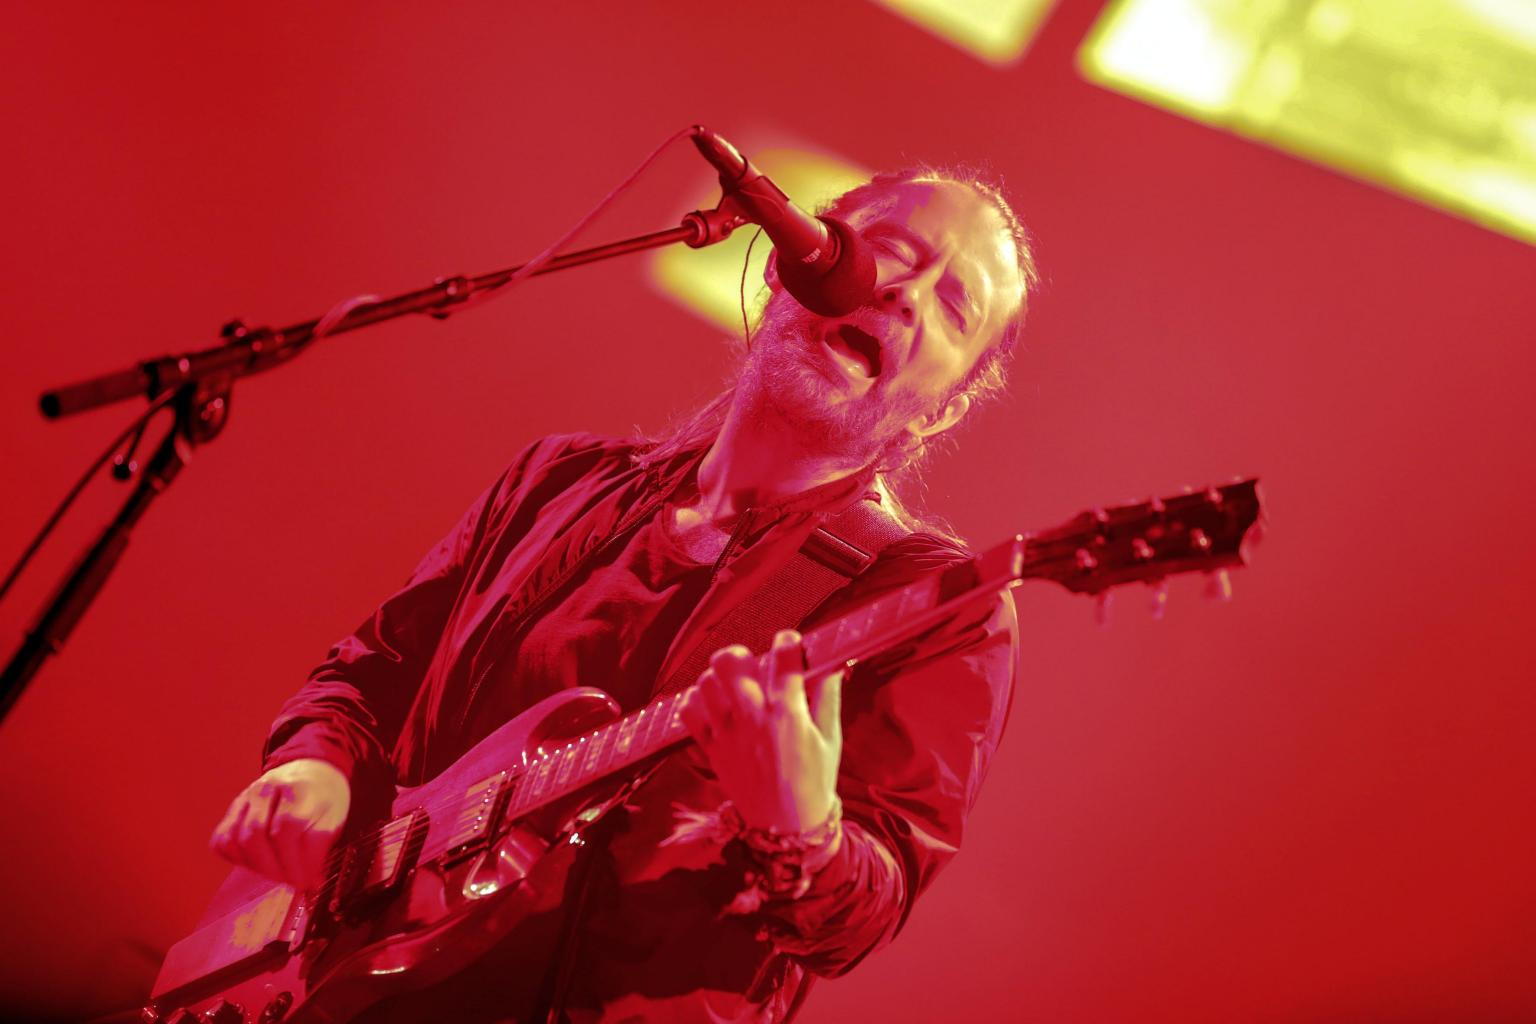 Radiohead Walks Off Stage Twice As Coachella Performance Marred By Sound Problems, Twitter Reacts